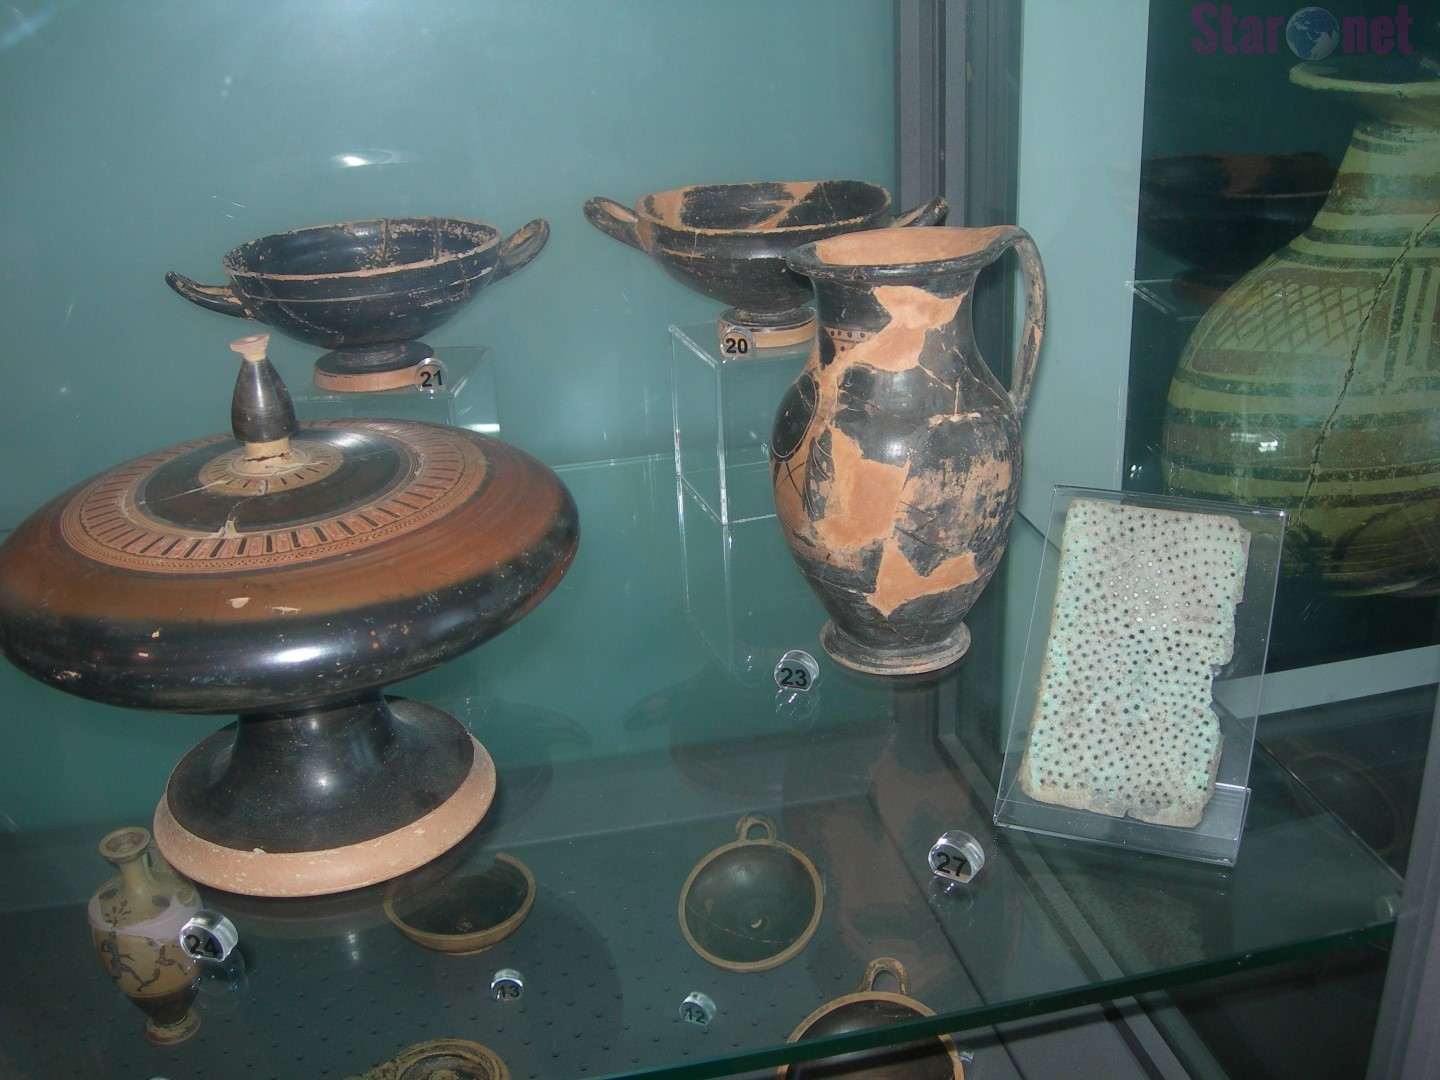 finds of the museum of palinuro